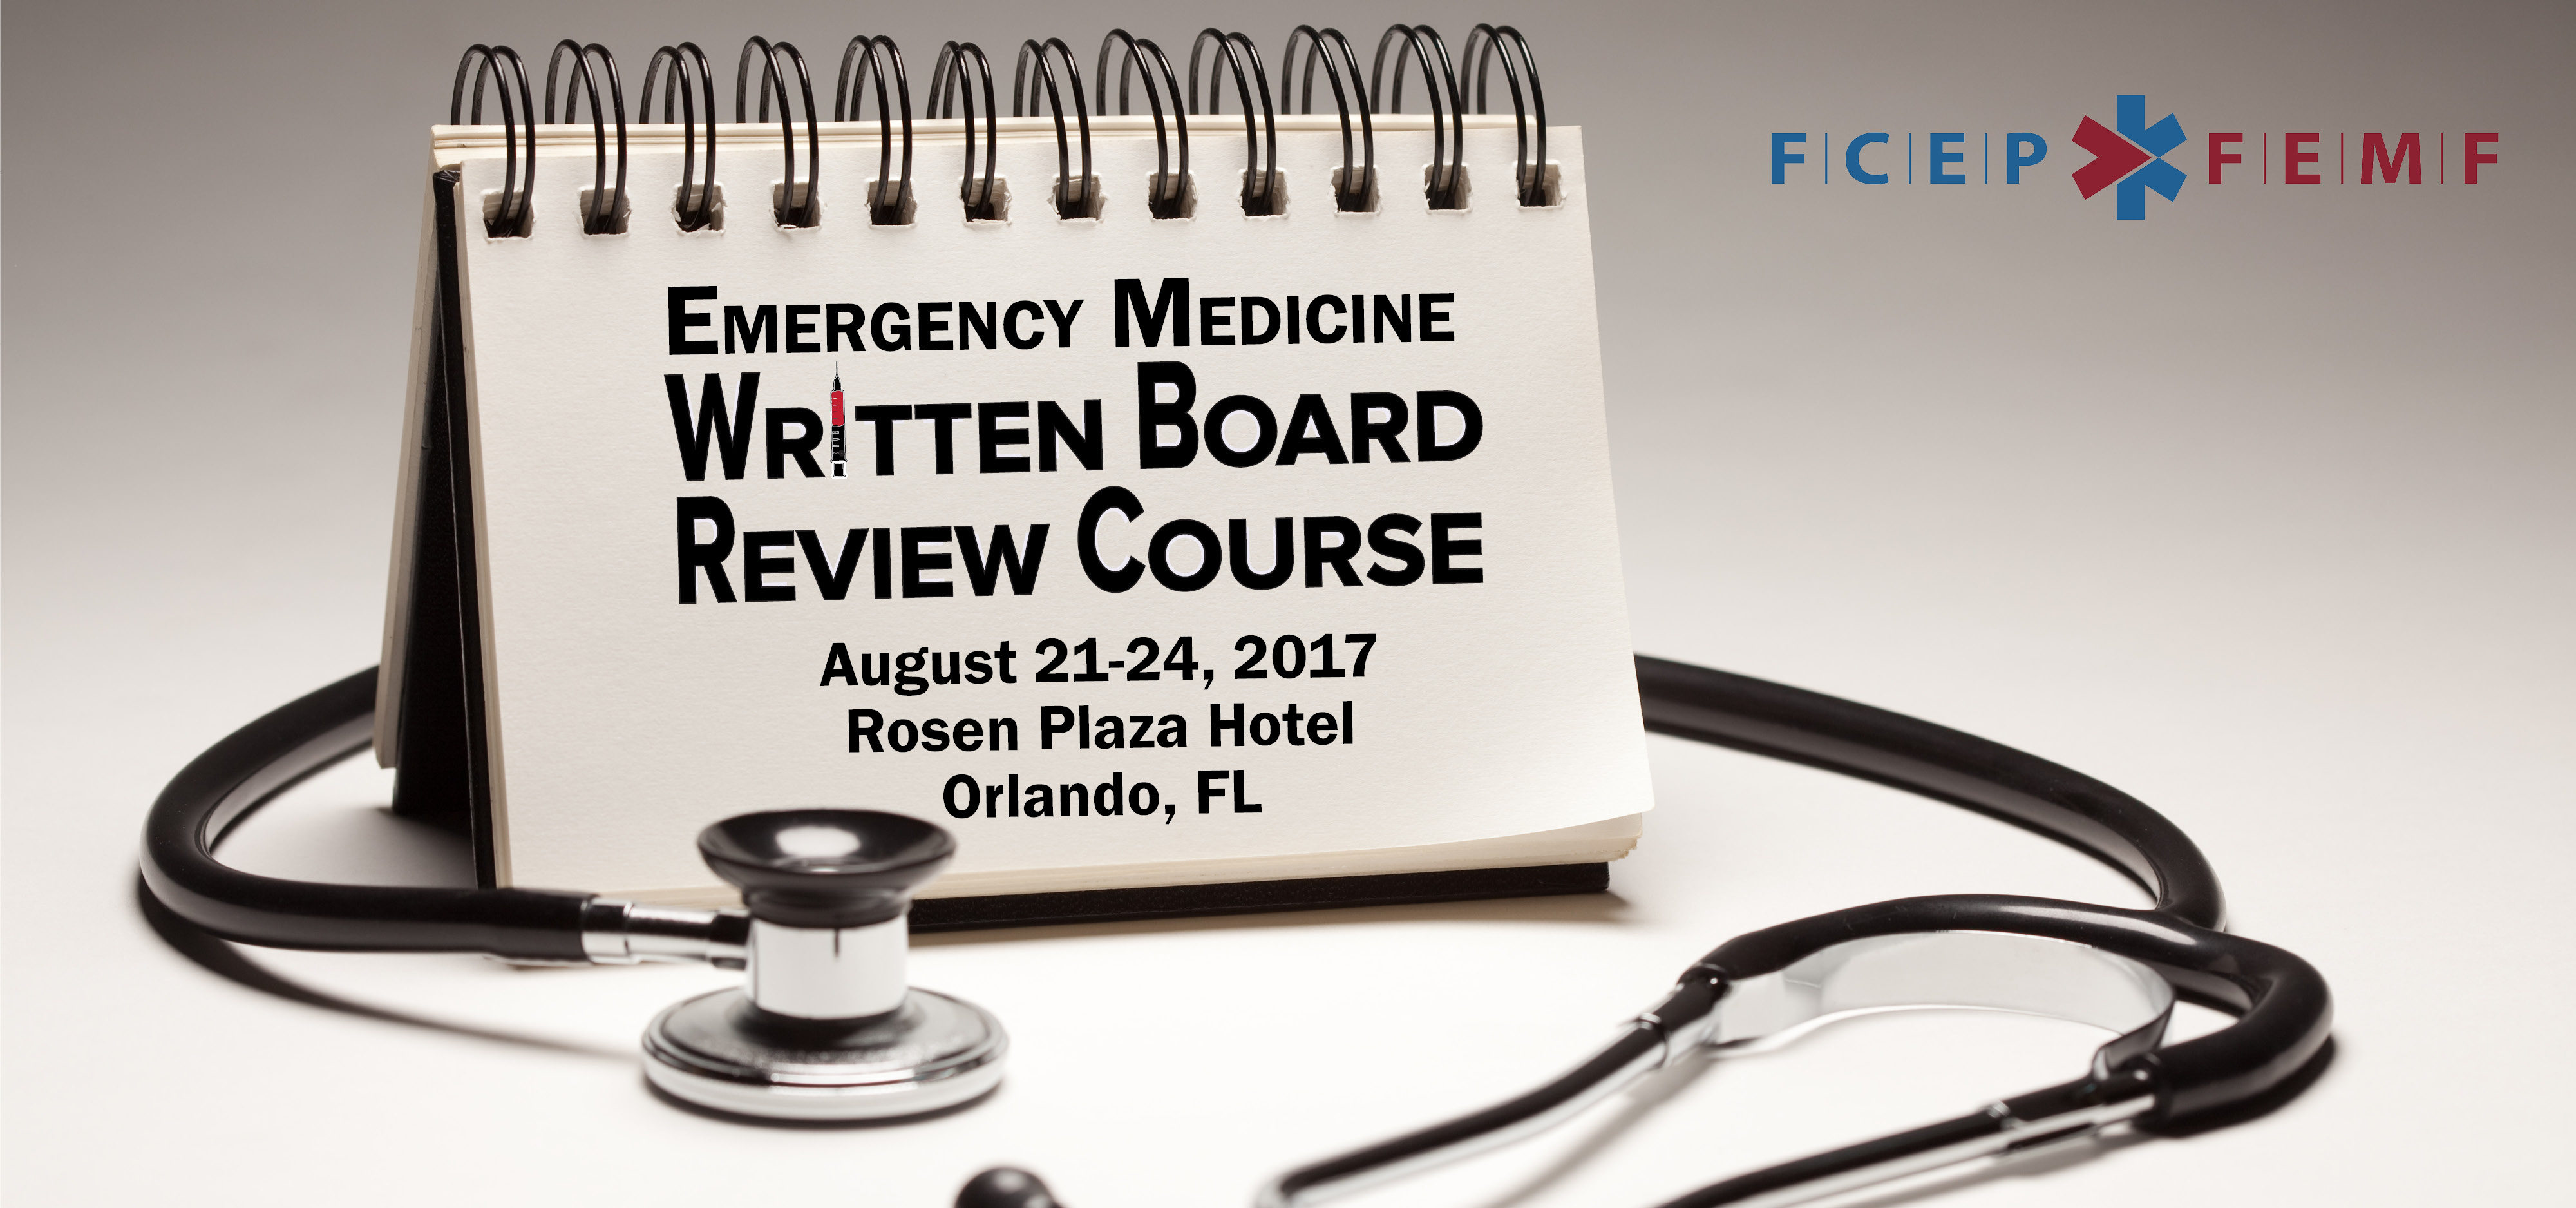 Florida's Emergency Medicine Written Board Review Course 2017